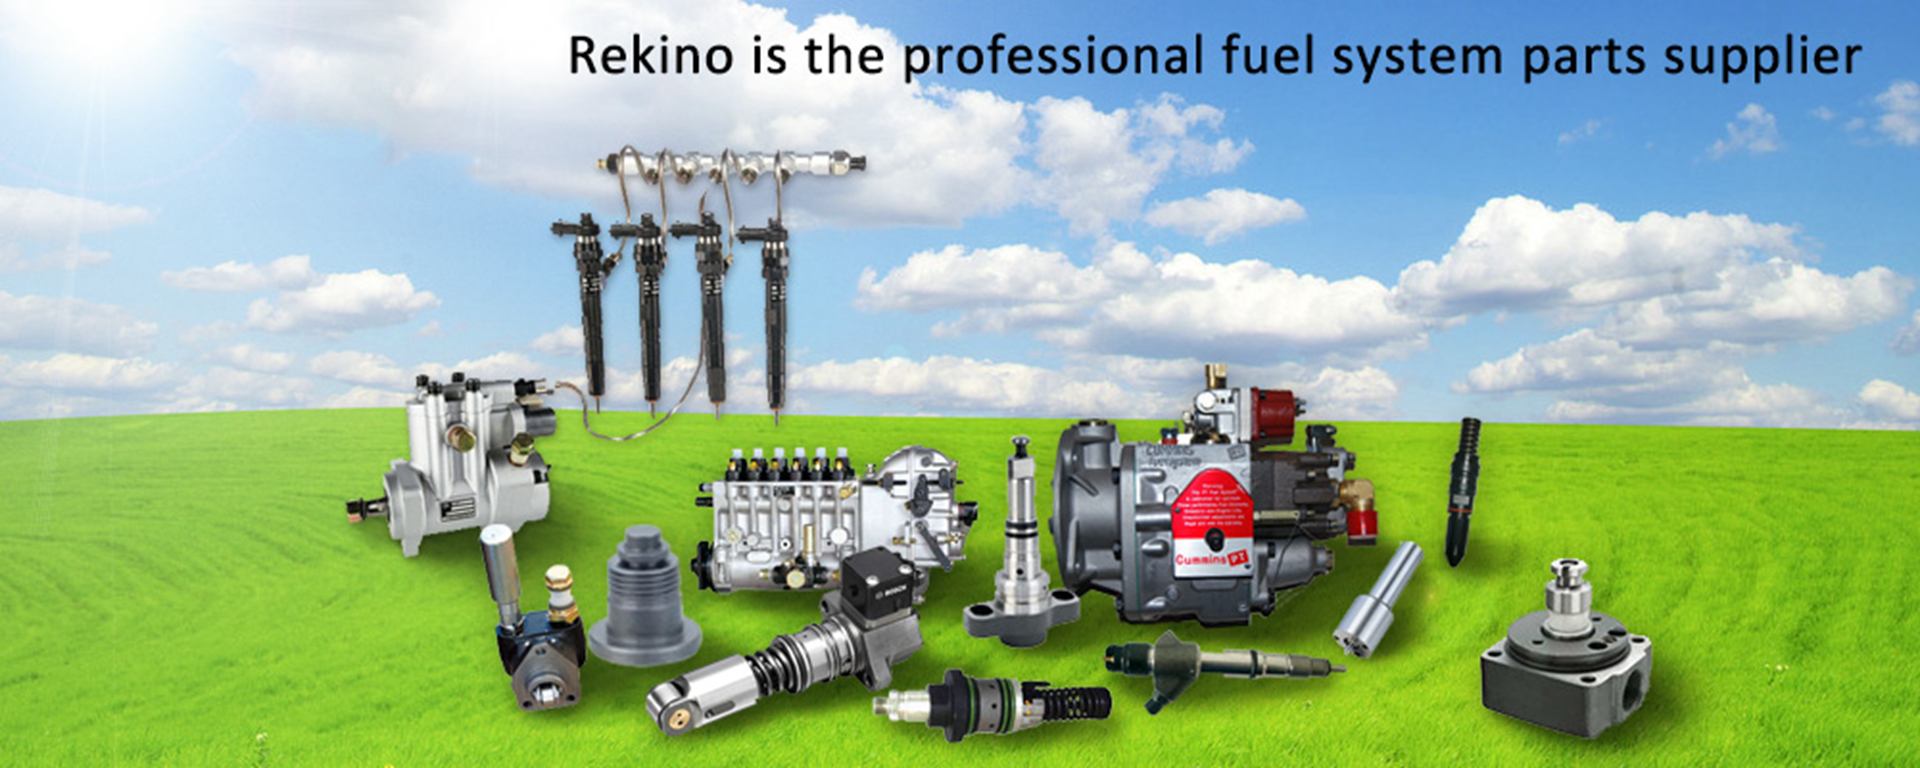 Rekino fuel injection system